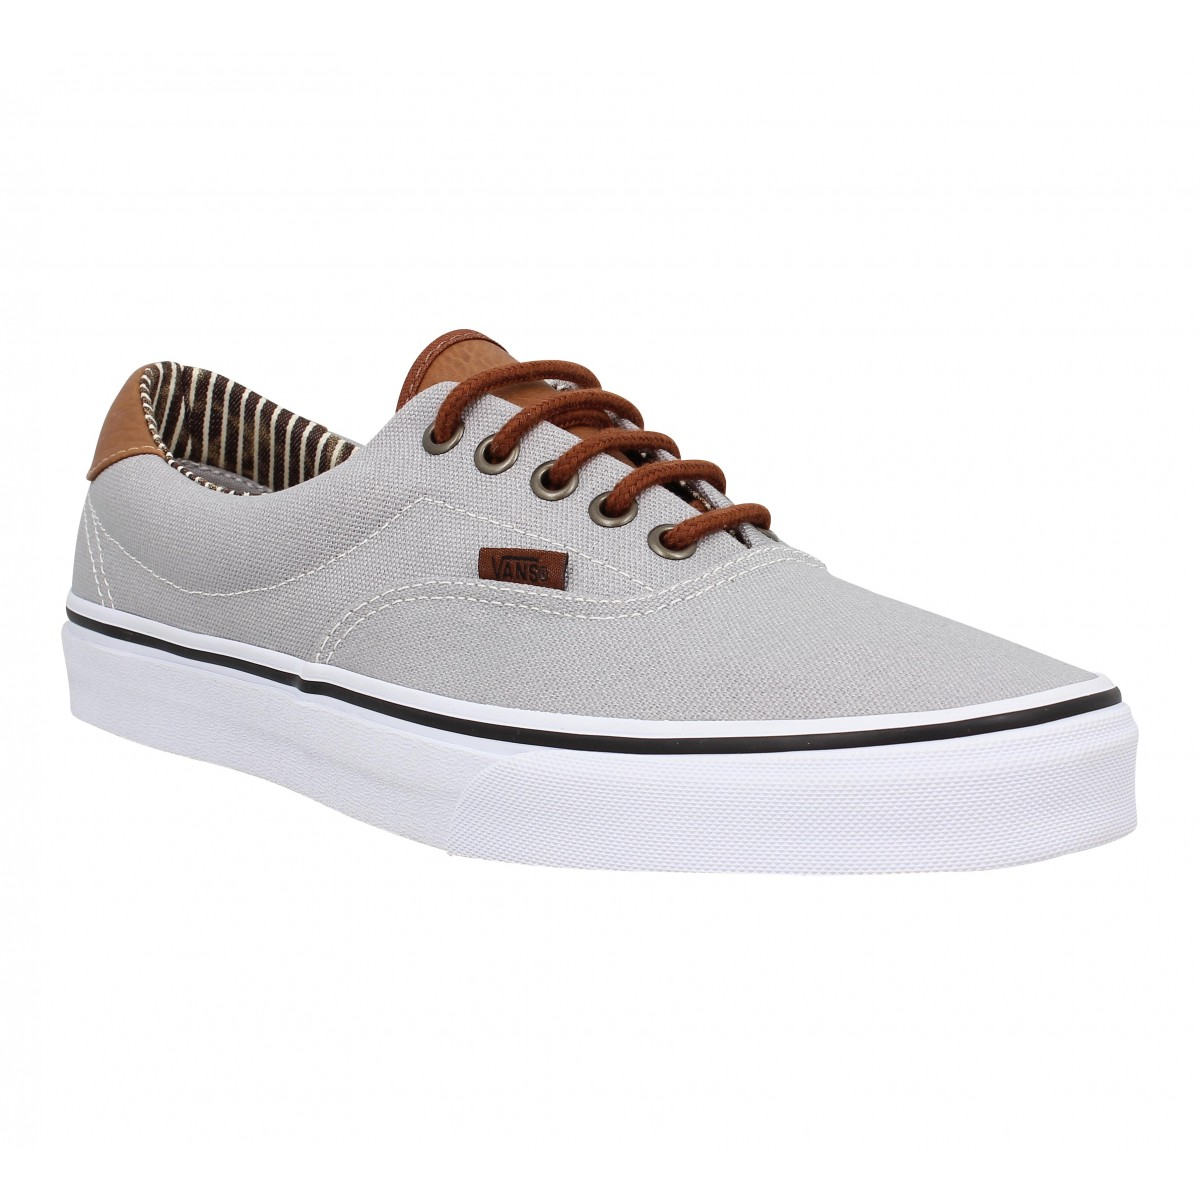 Baskets VANS Era 59 toile Homme Gris stripe